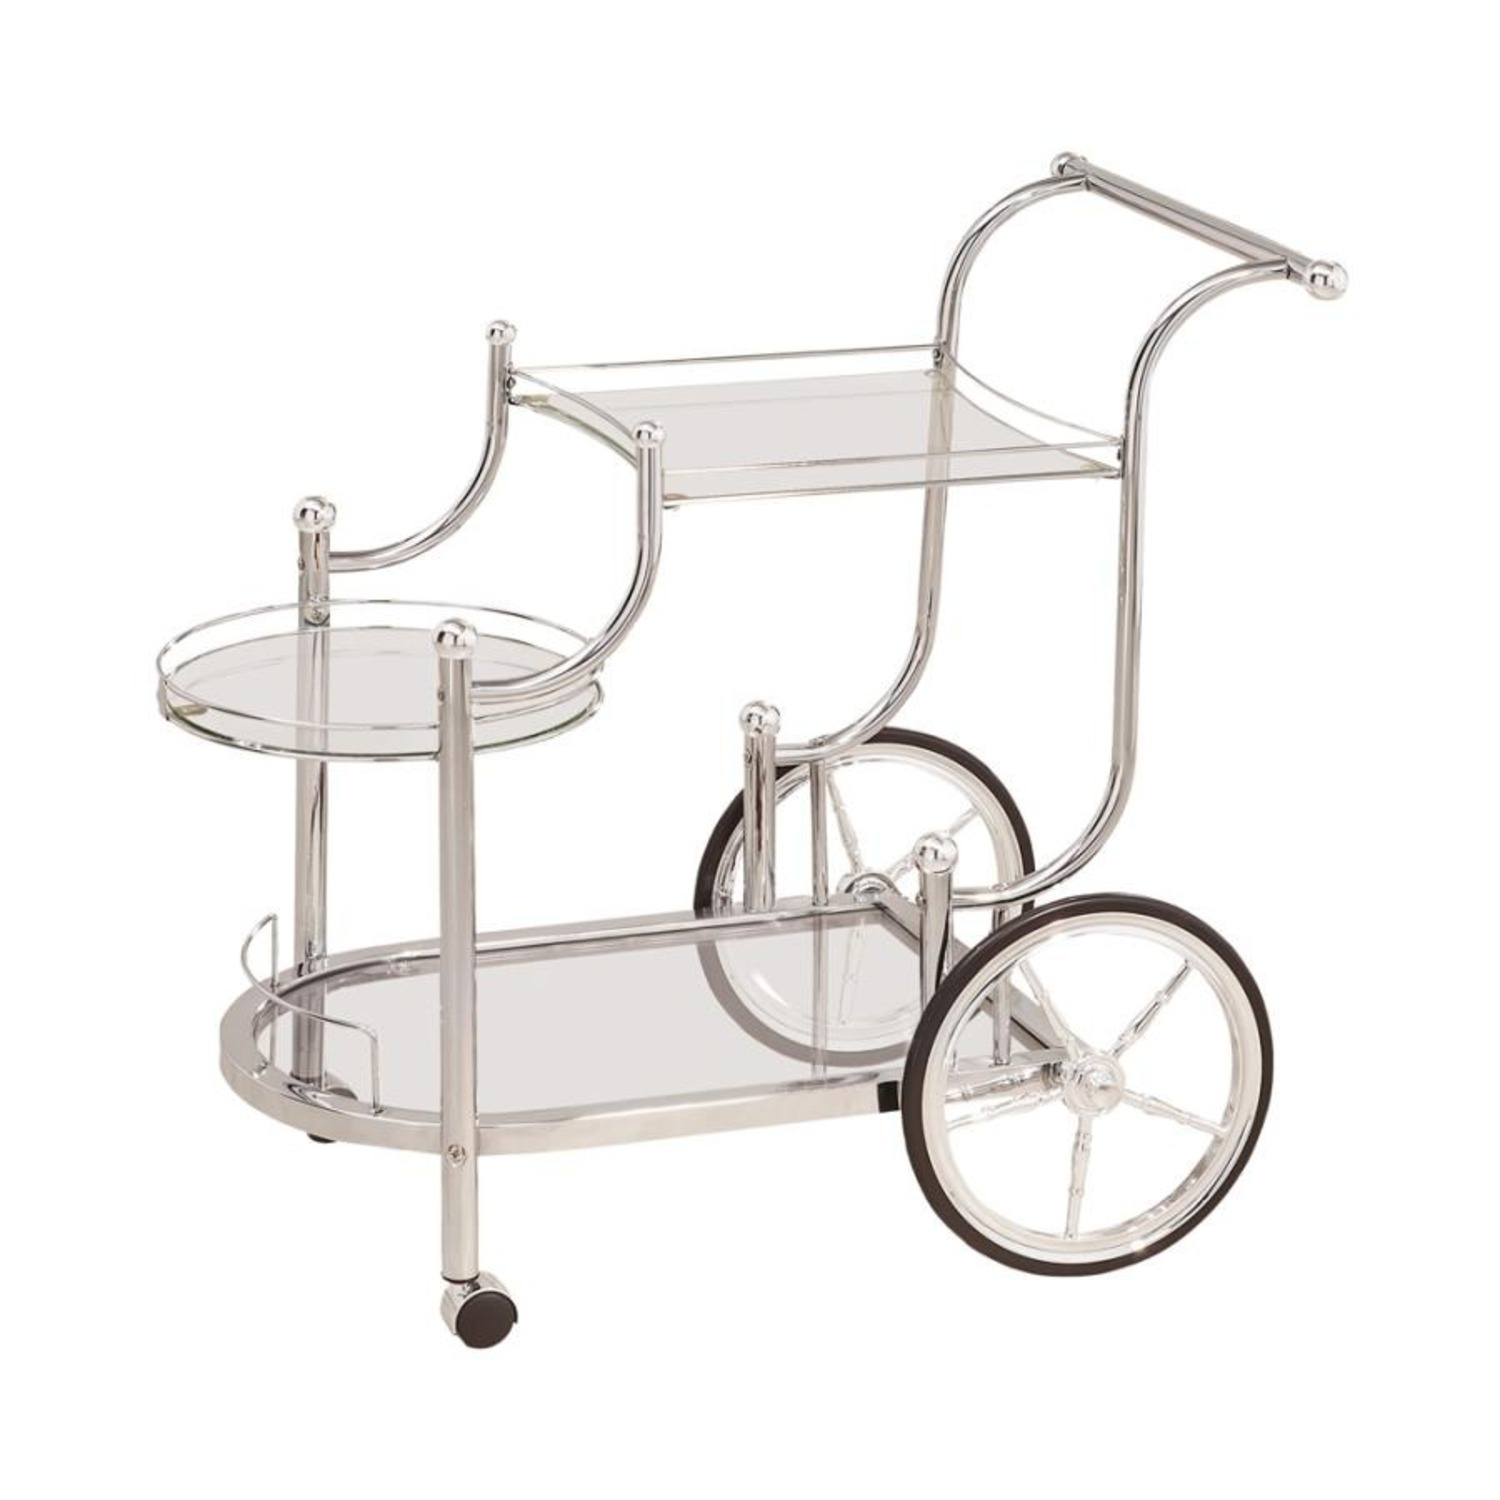 Serving Cart In Chrome Finish W/ Tempered Glass - image-0